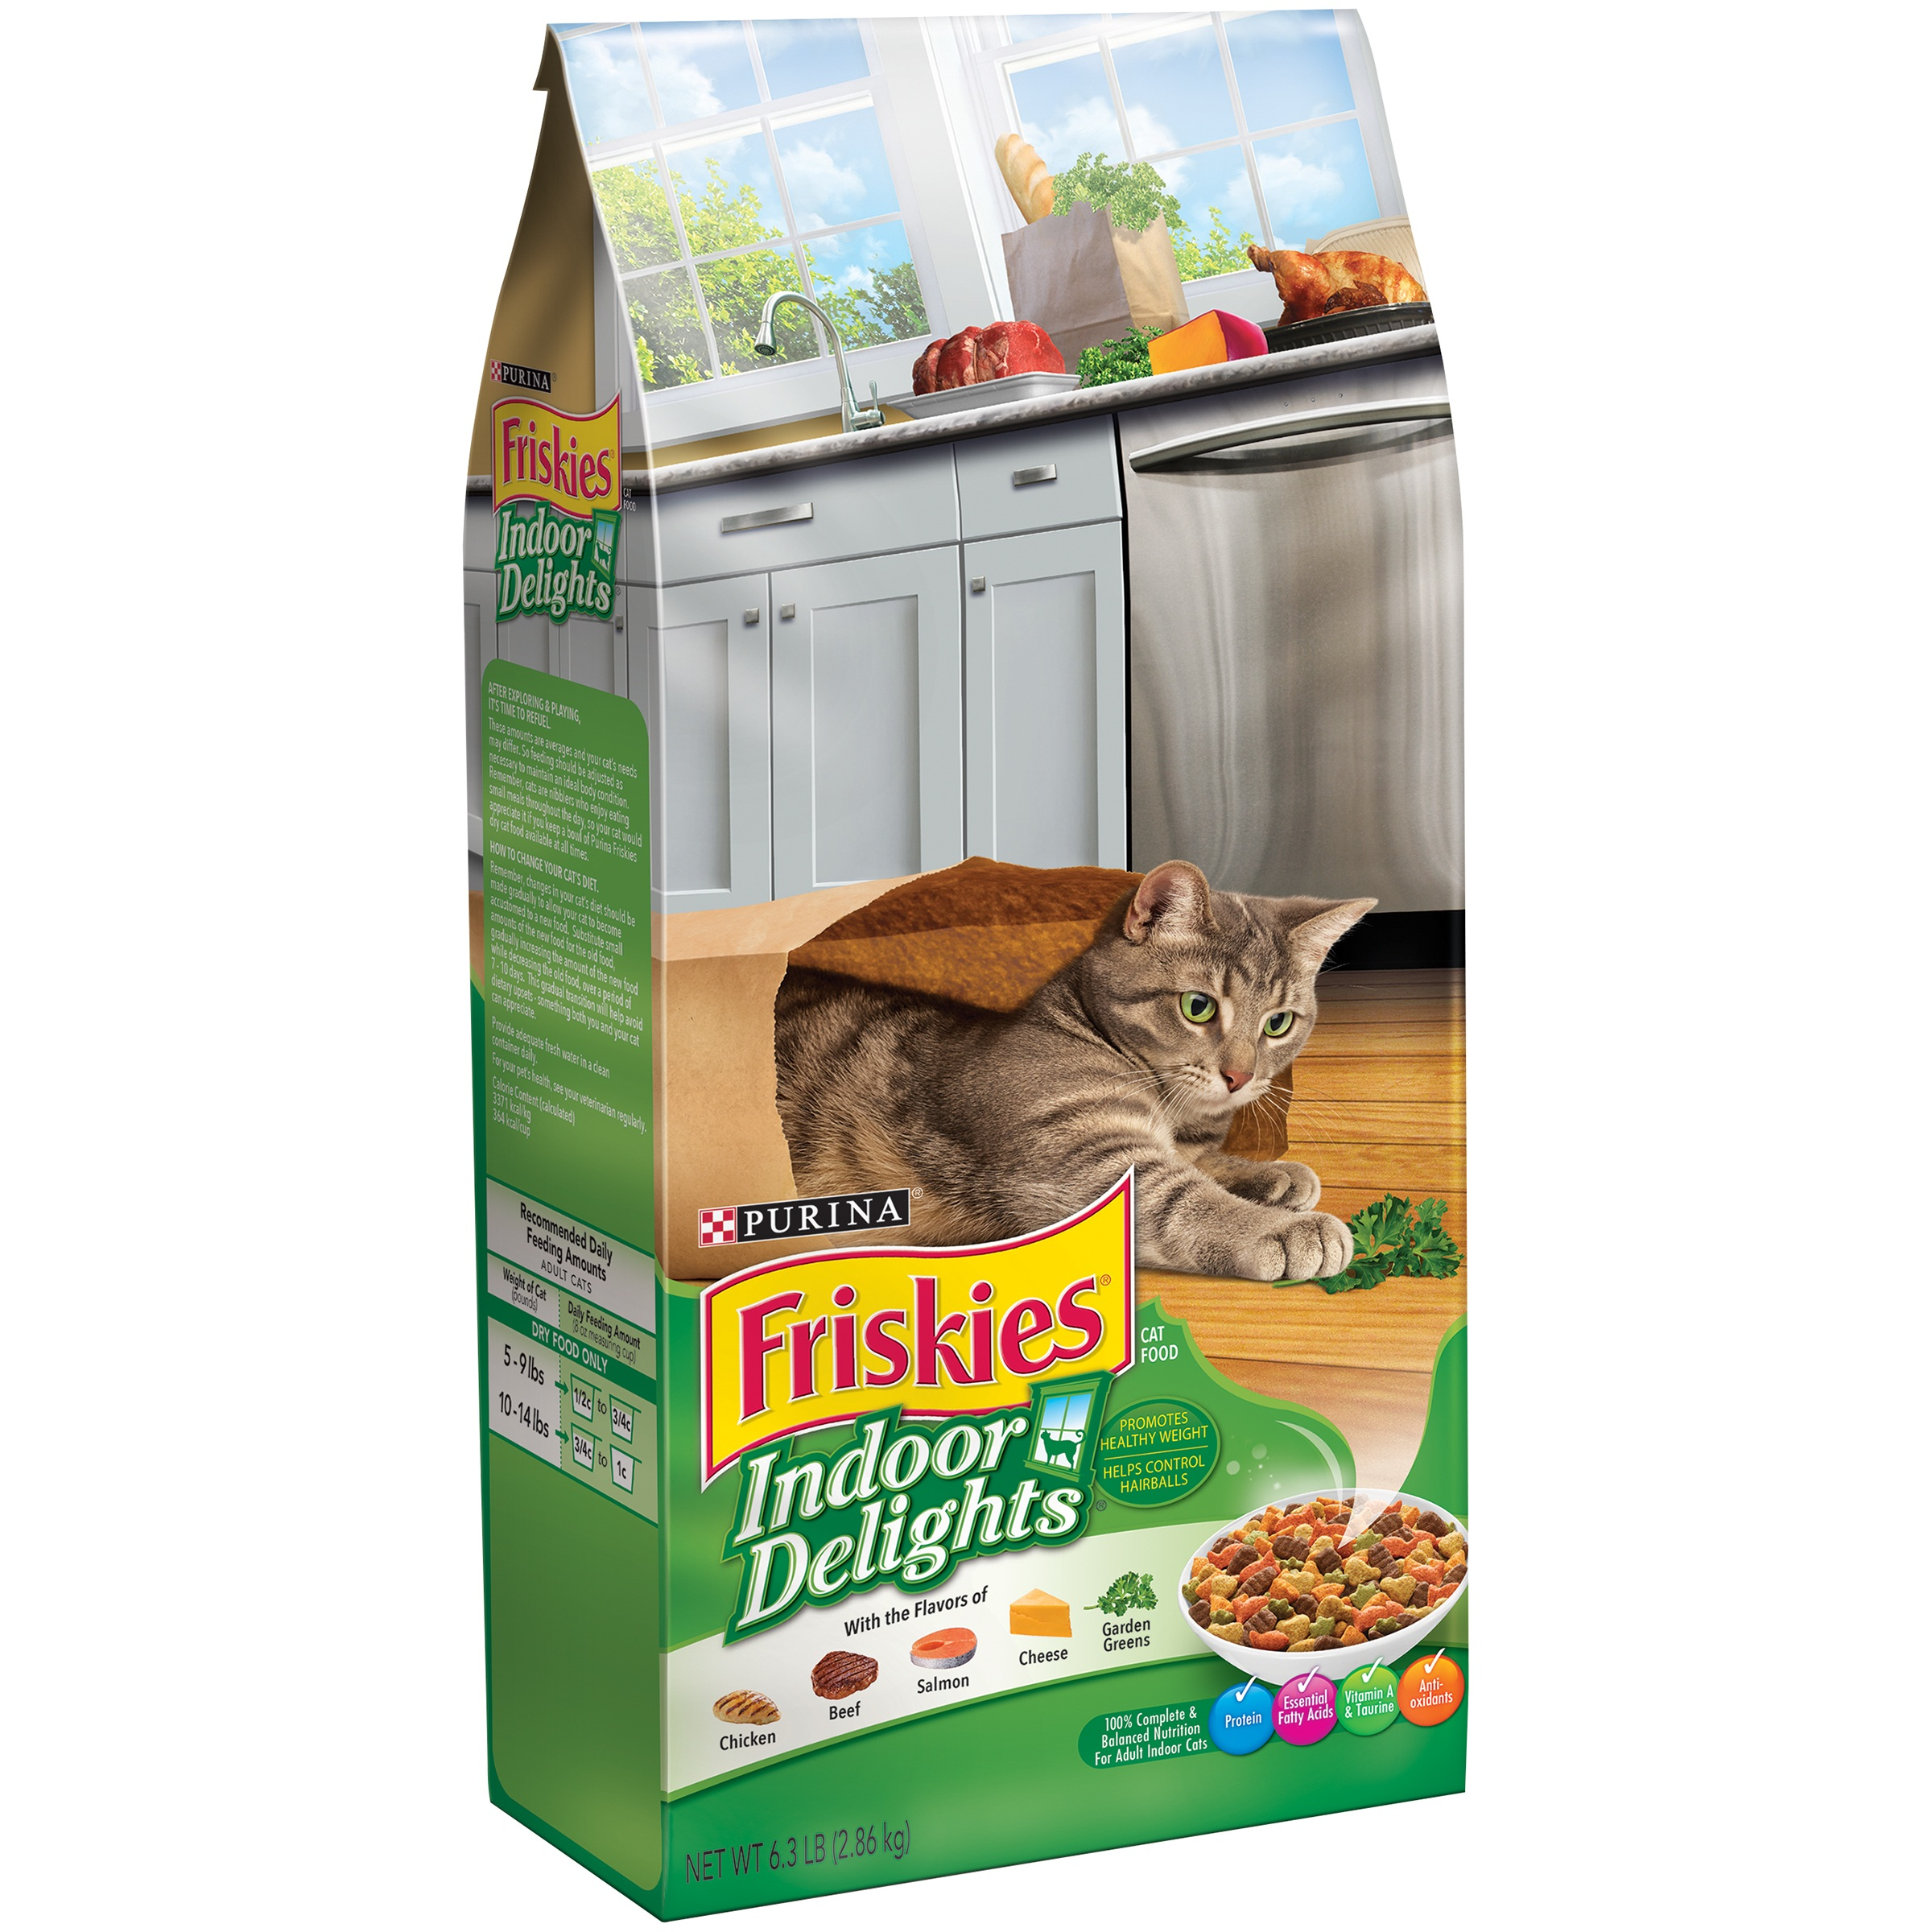 Purina Friskies Indoor Delights Chicken, Beef, Salmon, Cheese, Garden Greens Flavors Adult Dry Cat Food, 6.3 lb